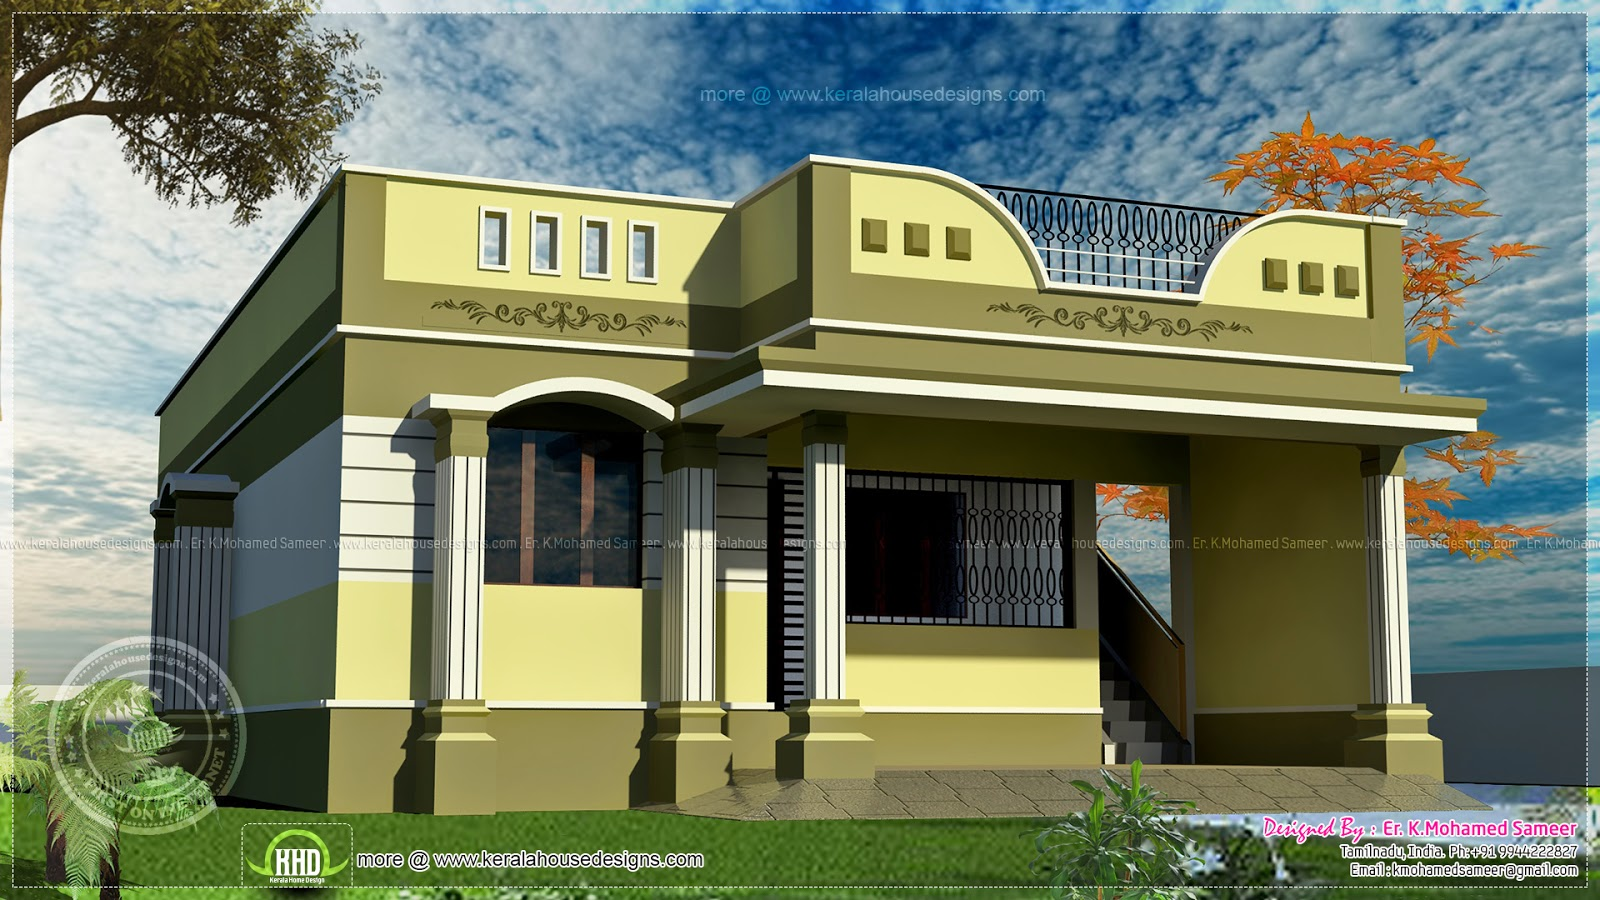 100 square meter one floor house design - Kerala home design and floor ...